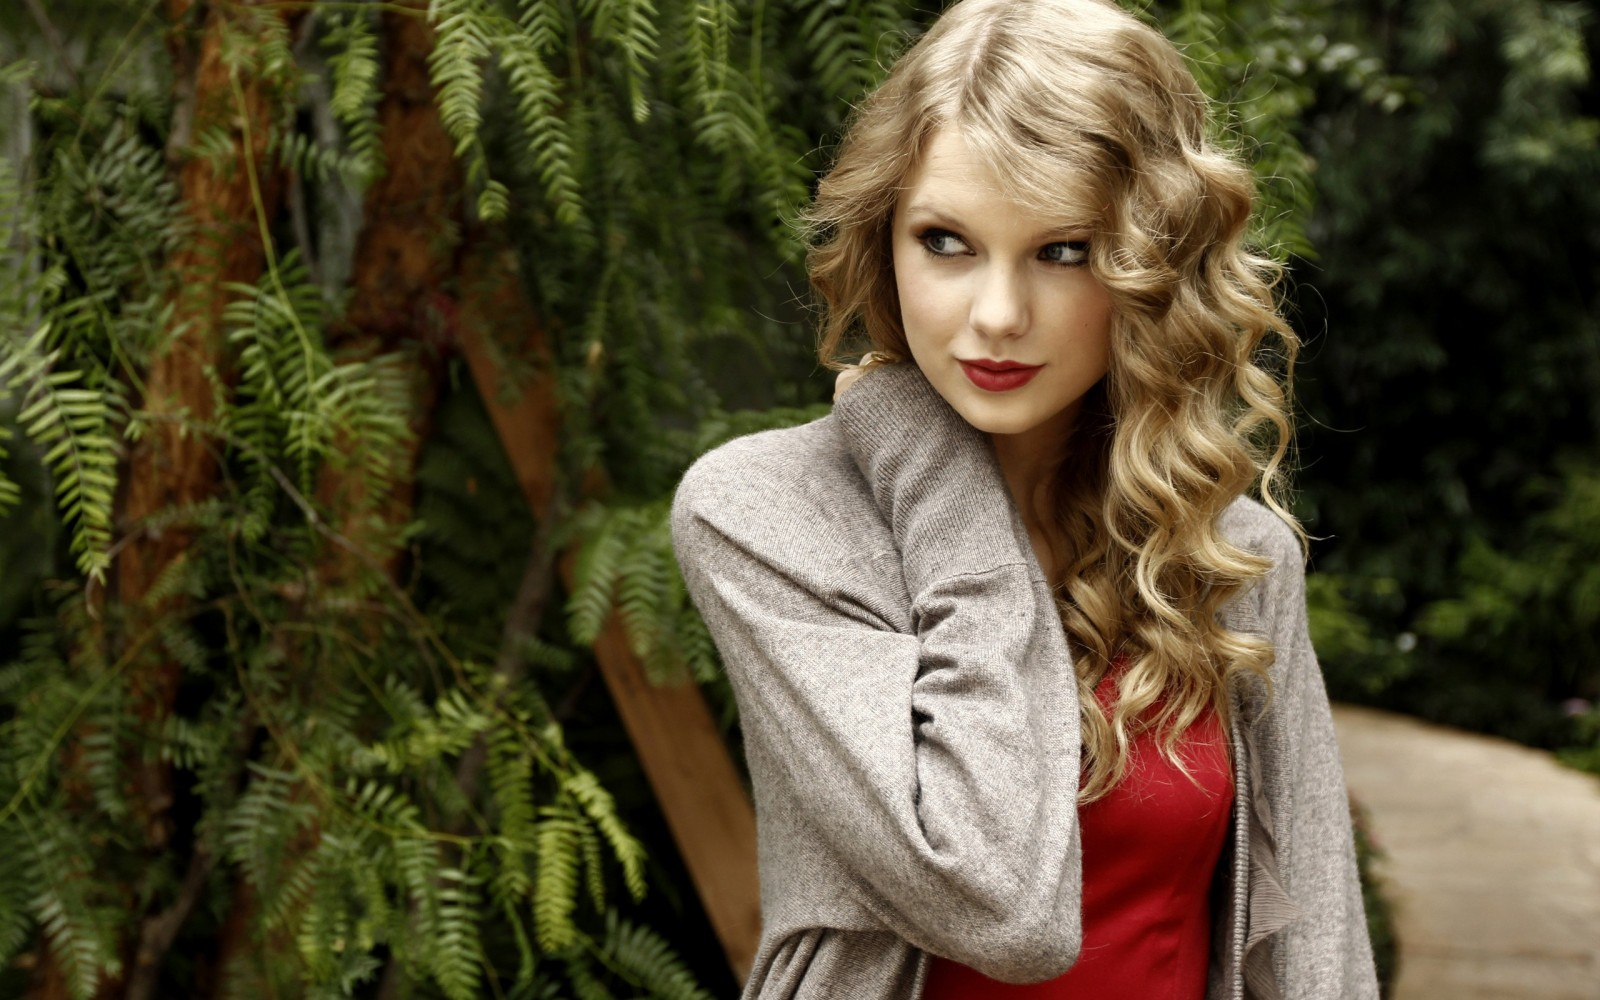 Wallpaperspoints Taylor Swift 2013 wallpaper Full HD 1600x1000